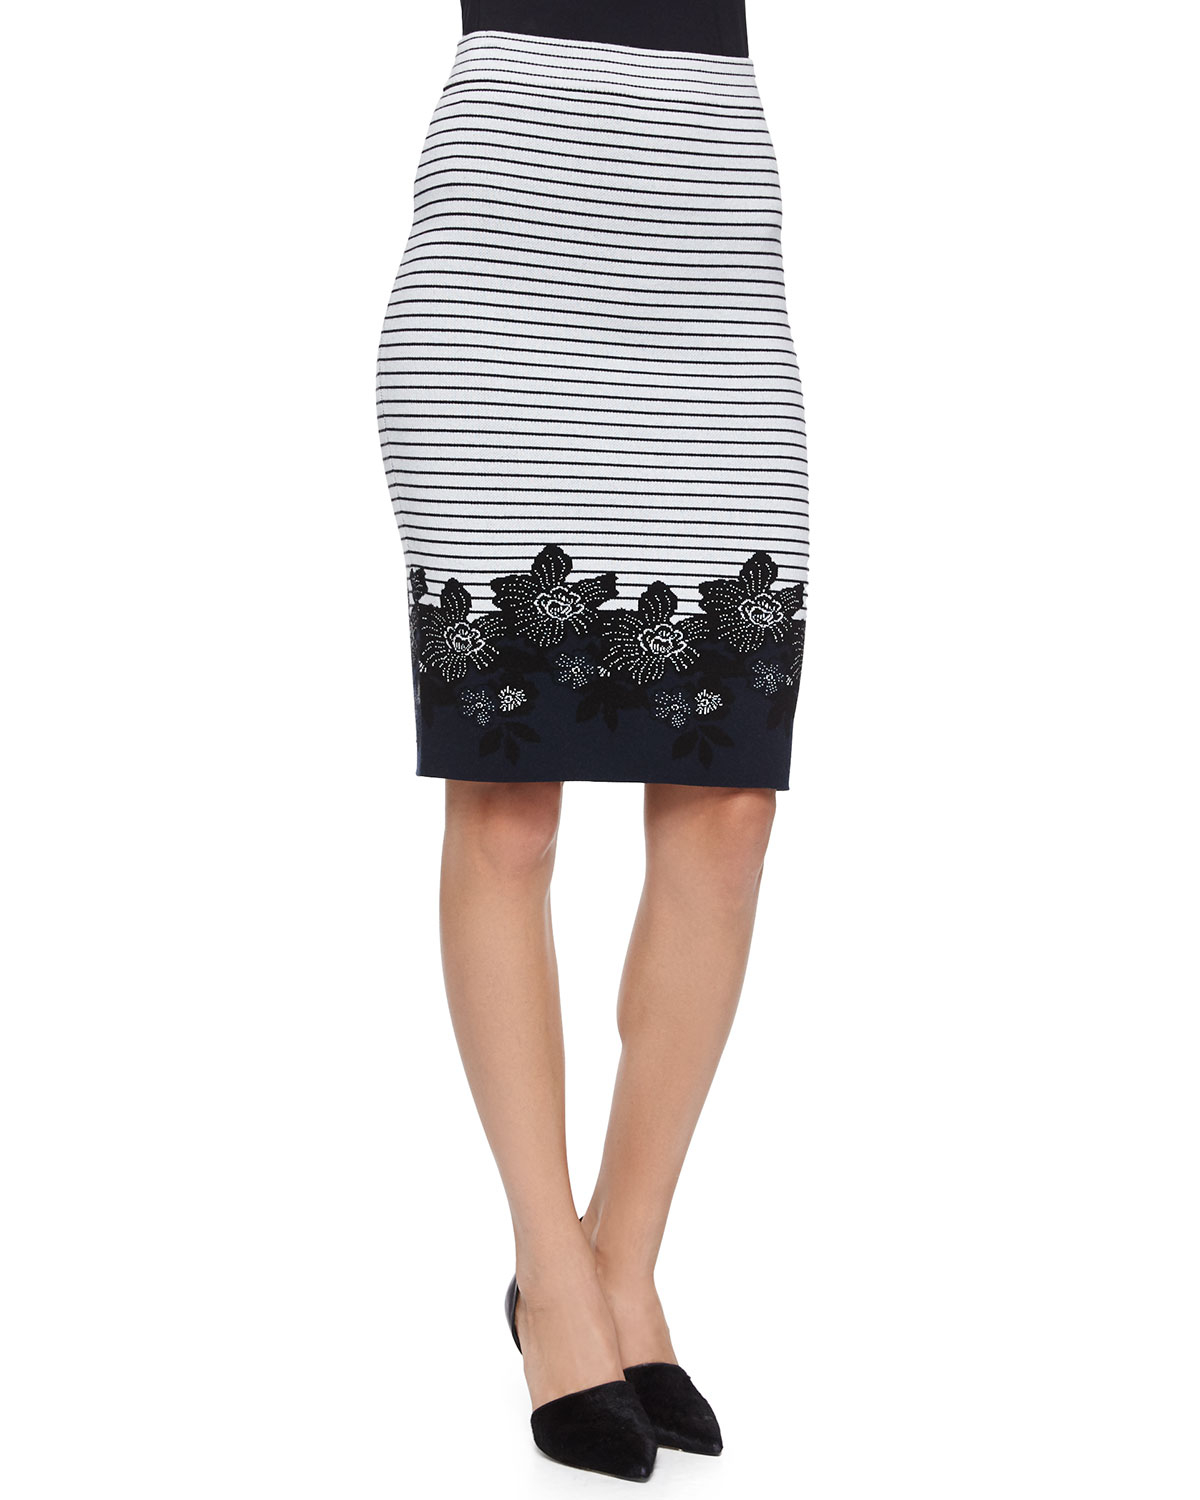 c16e67471e880 Striped Skirt Blue Pattern Related Keywords   Suggestions - Striped ...